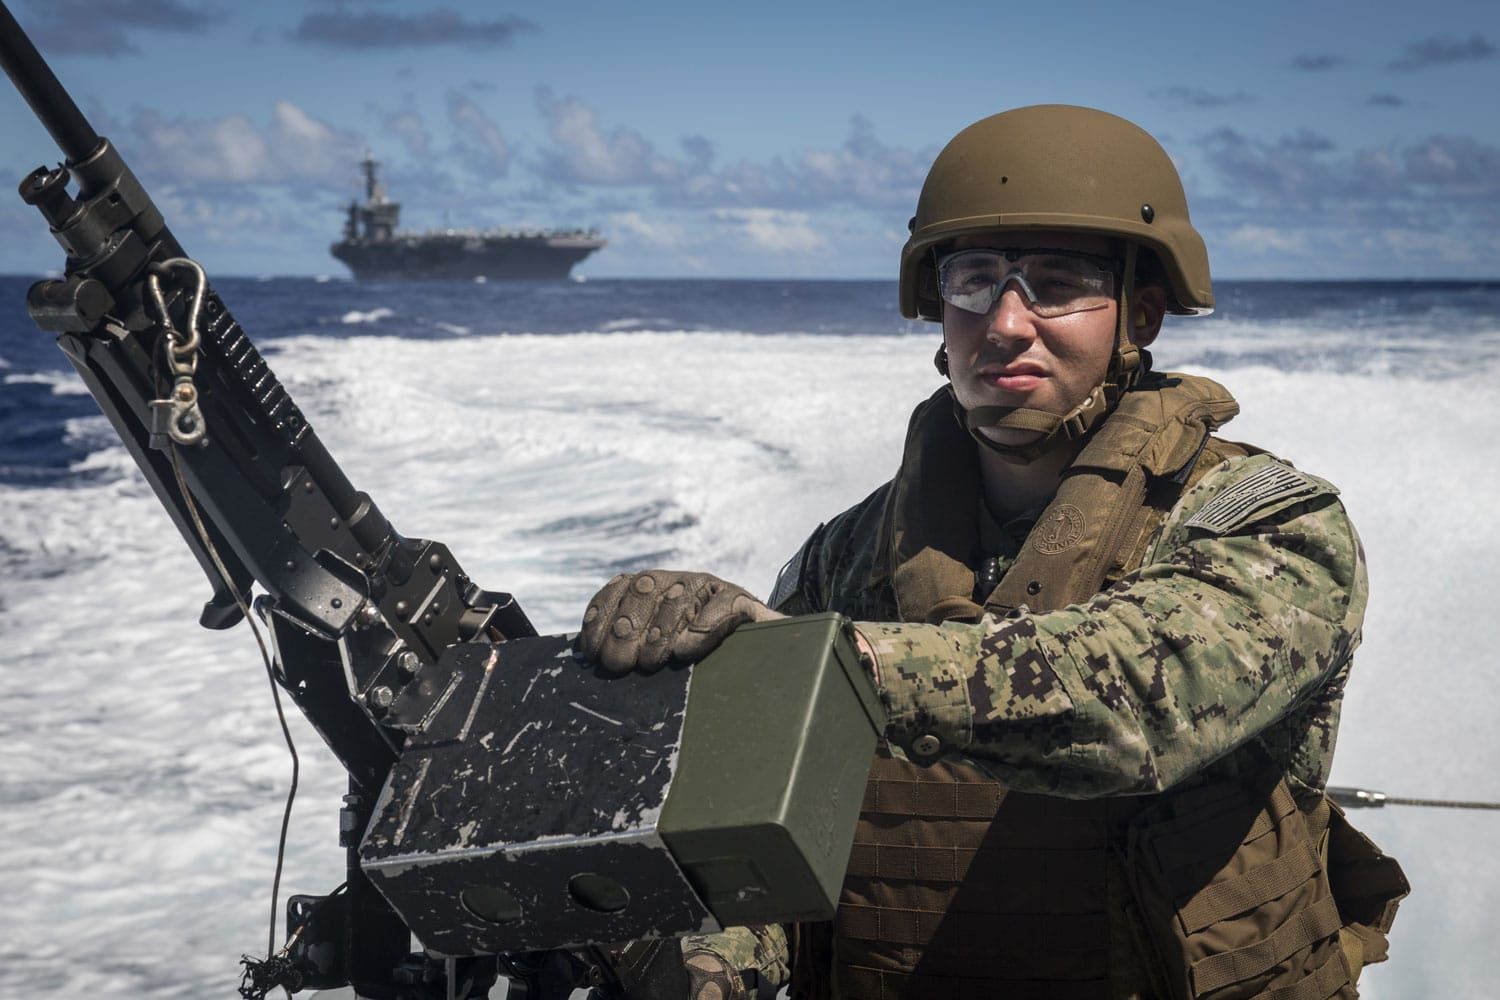 U.S. Navy Electricians Mate 3rd Class Louis Cabiran, assigned to Coastal Riverine Squadron (CRS) 2, mans an M240G machine gun aboard a MK VI patrol boat while providing high value asset protection for the aircraft carrier USS Theodore Roosevelt.